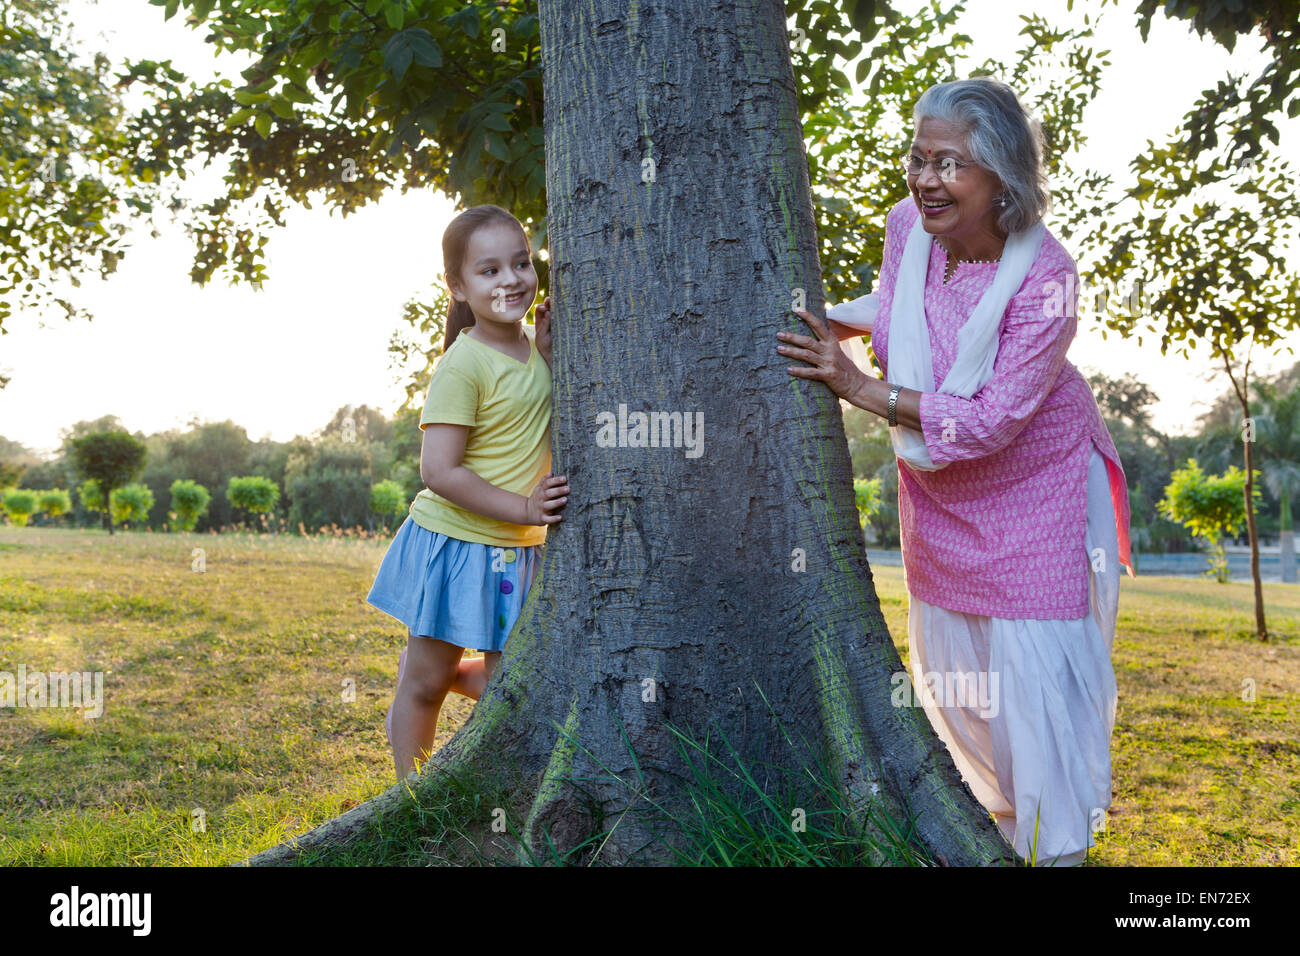 Grandmother and granddaughter playing hide and seek - Stock Image